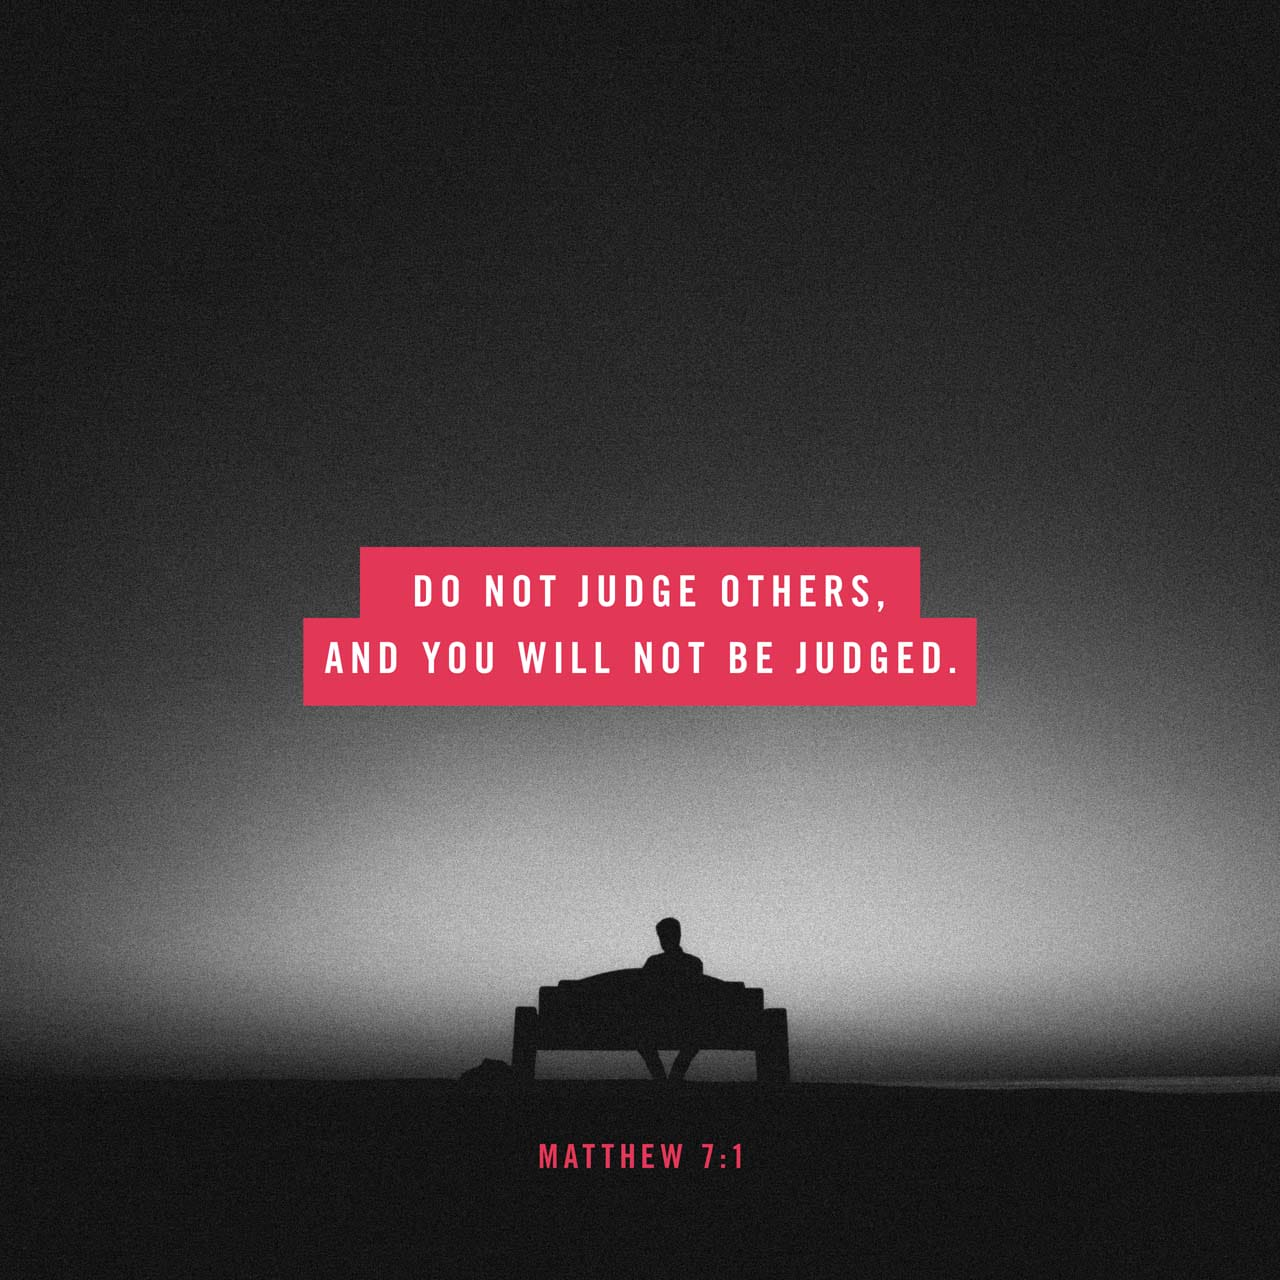 """Matthew 7:1-5 """"Do not judge, or you too will be judged. For in the same way  you judge others, you will be judged, and with the measure you use, it will  be"""